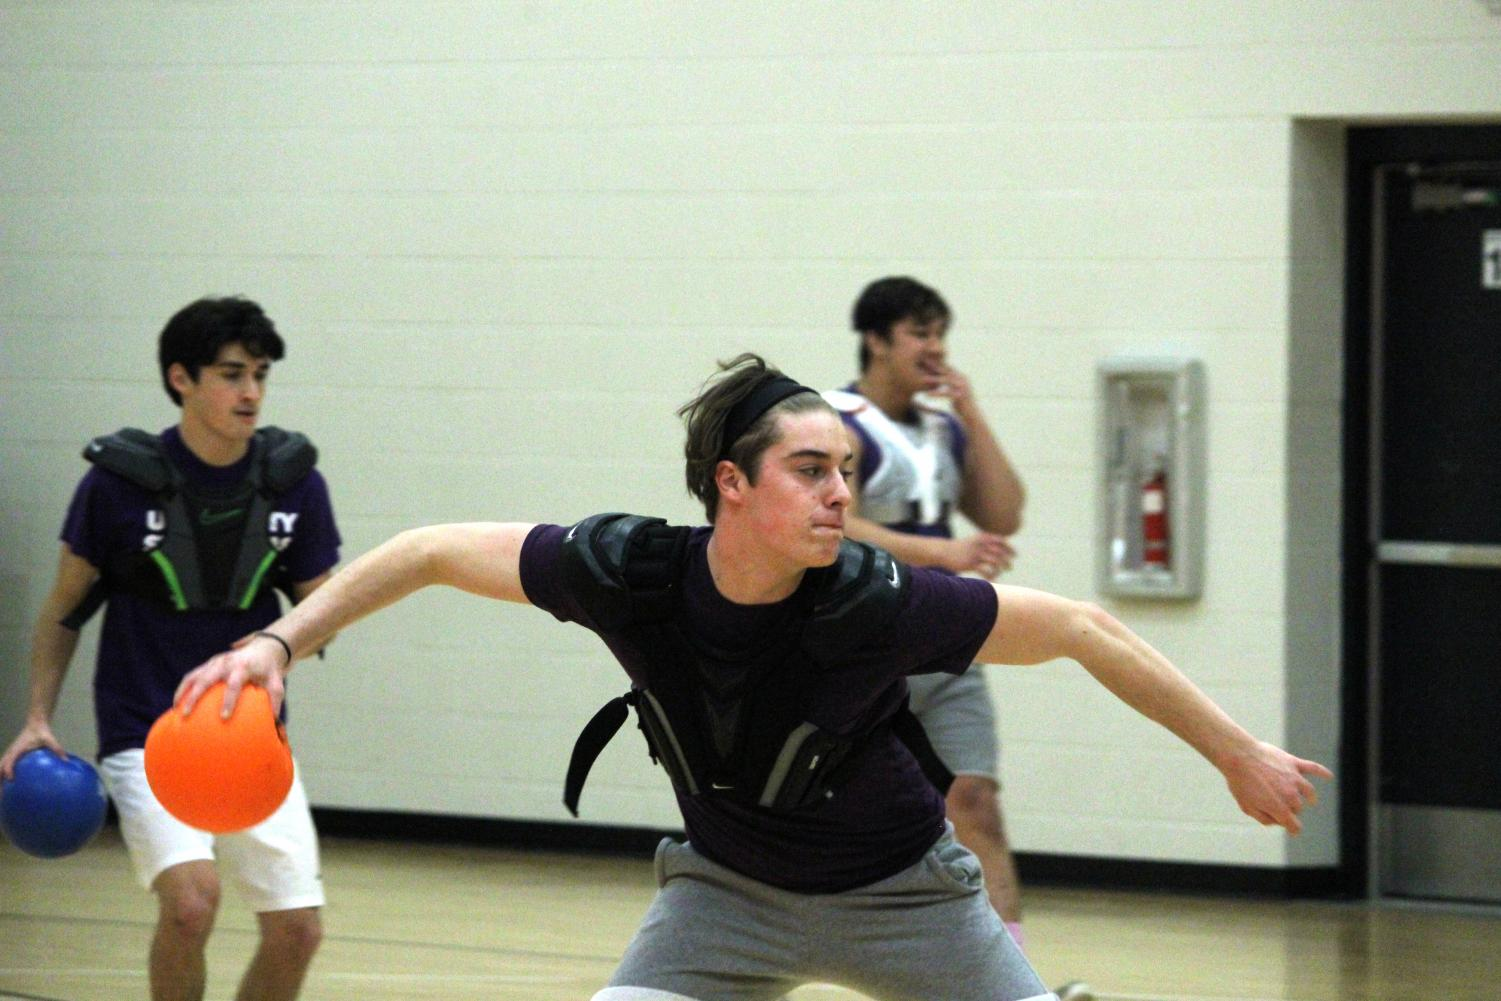 Senior Mitchell Vortherms participates in a dodgeball game during Snodaze week. Seniors Mahamed Mahamed, Megan Perkins and Hanna Schechter are hosting a fundraiser in the form of a dodgeball tournament April 18 in the old gym.